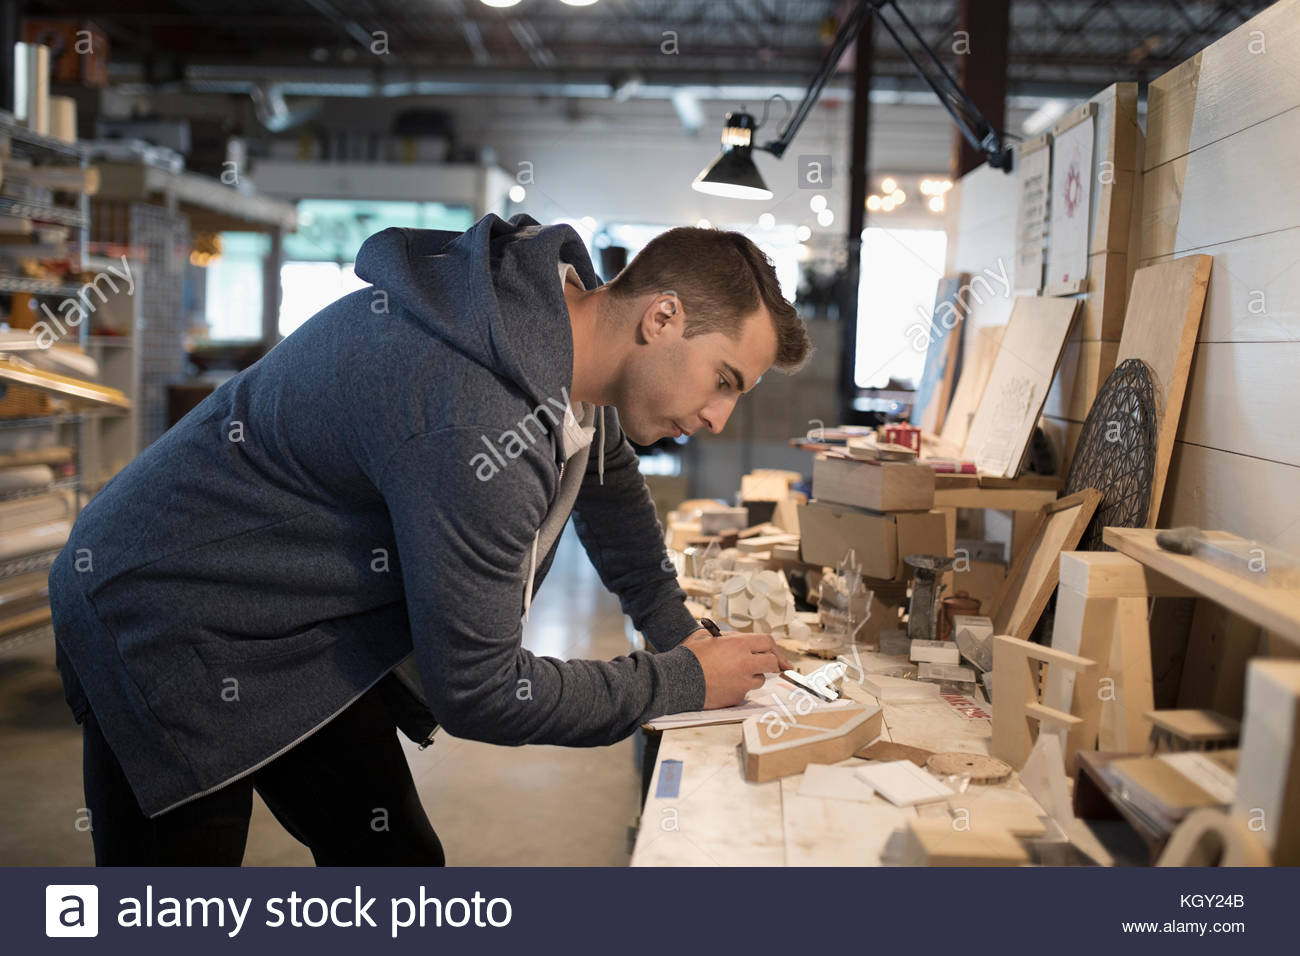 Focused male craftsman with clipboard and wood pieces in workshop - Stock Image